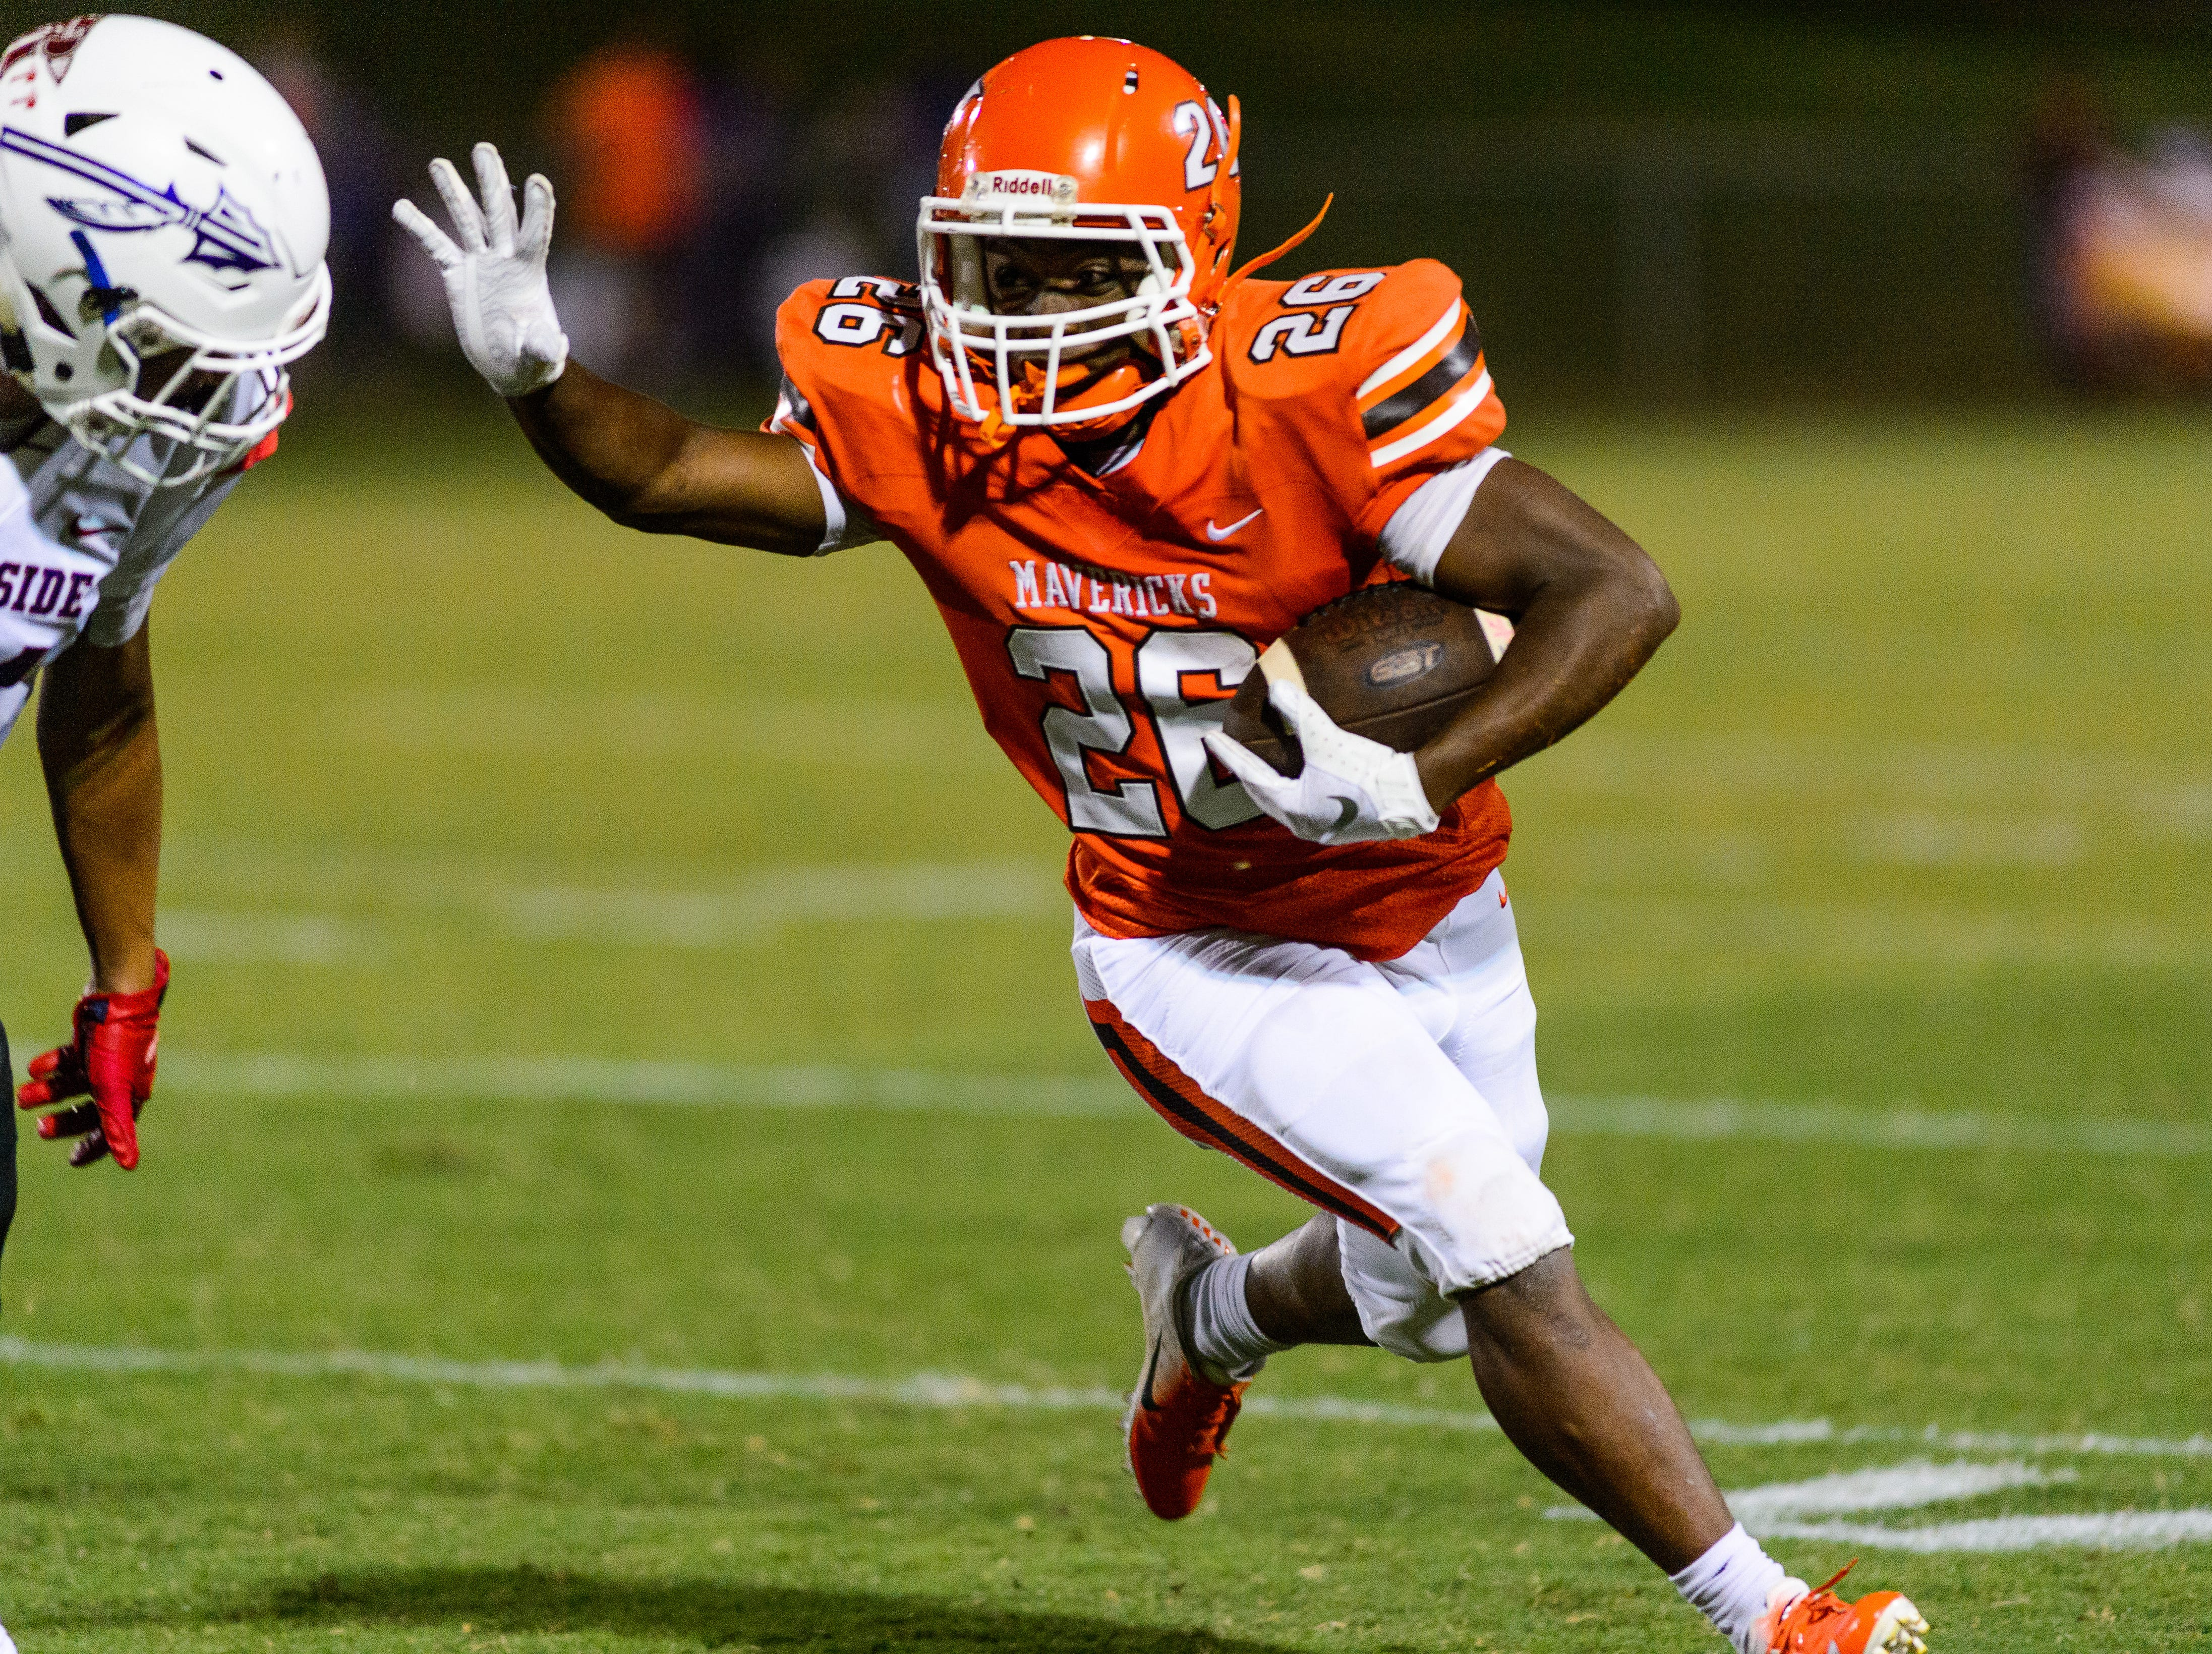 Mauldin's Jordon Franklin (26) runs to the outside and picks up a first down against Riverside on Friday, September 21, 2018, at Mauldin's Freeman Field.